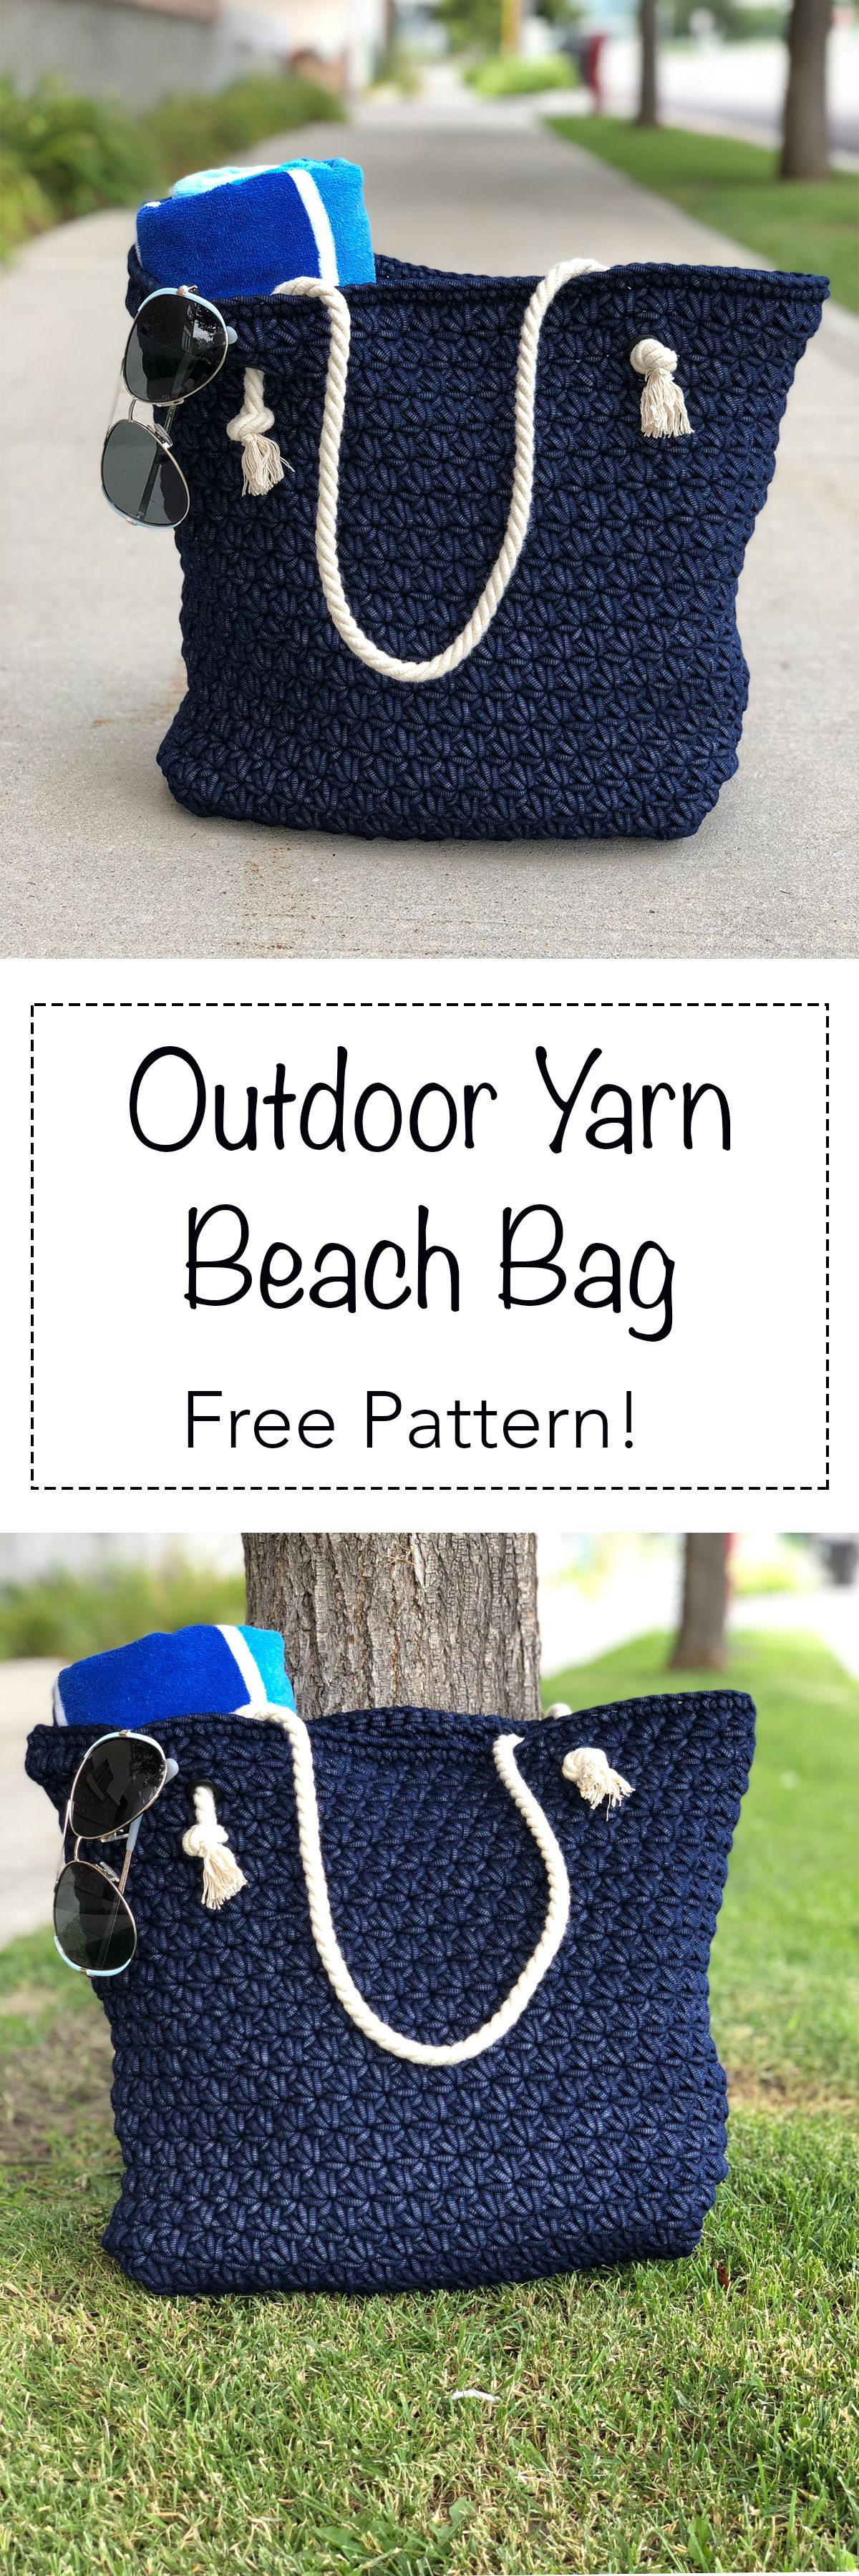 Beach bag made with Bernat Outdoor Yarn! | crochet | Pinterest ...